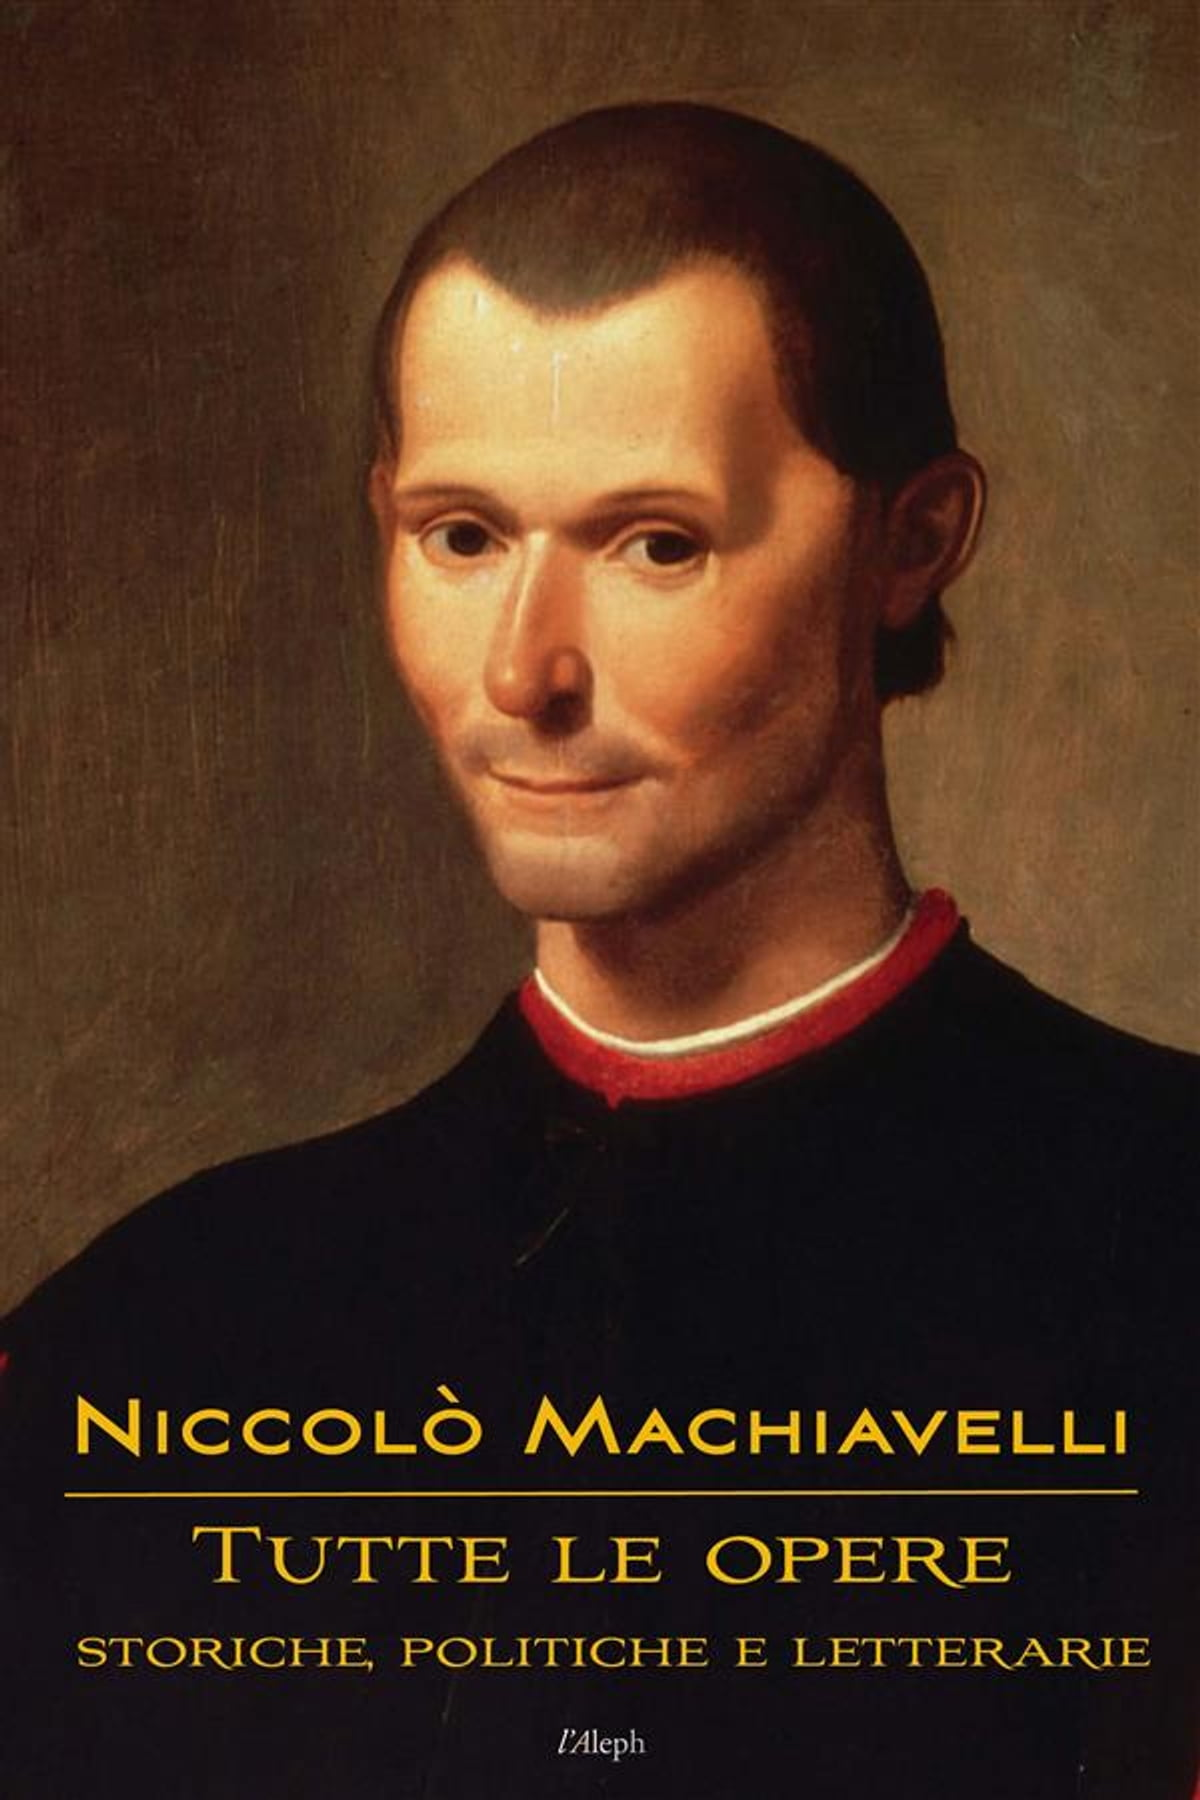 Niccolò Machiavelli: Tutte le opere eBook by Niccolò Machiavelli -  9789176377581